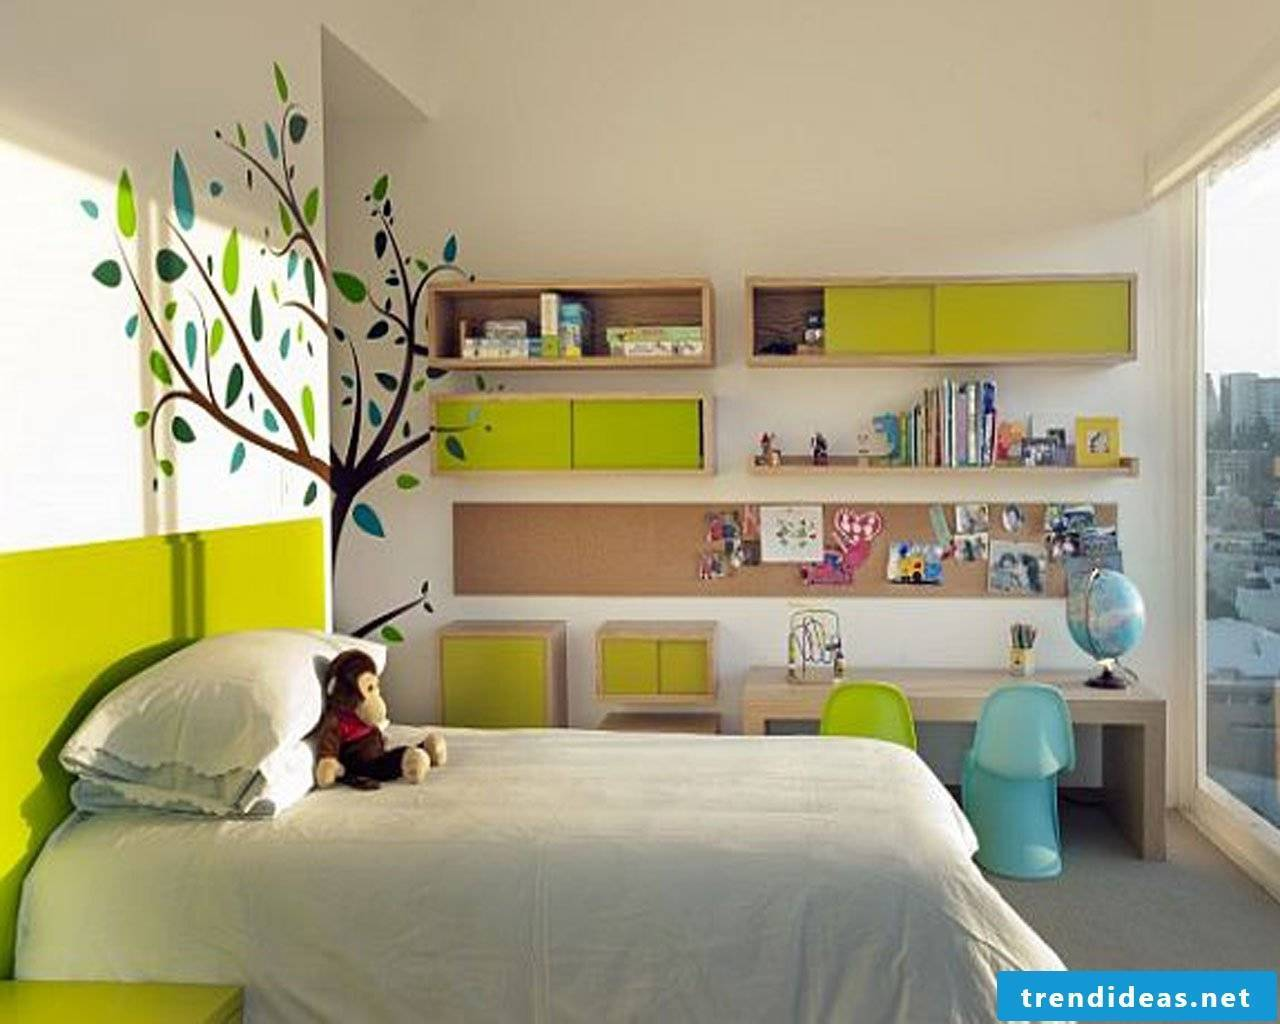 Chic and cozy - children's room in the green with a large window